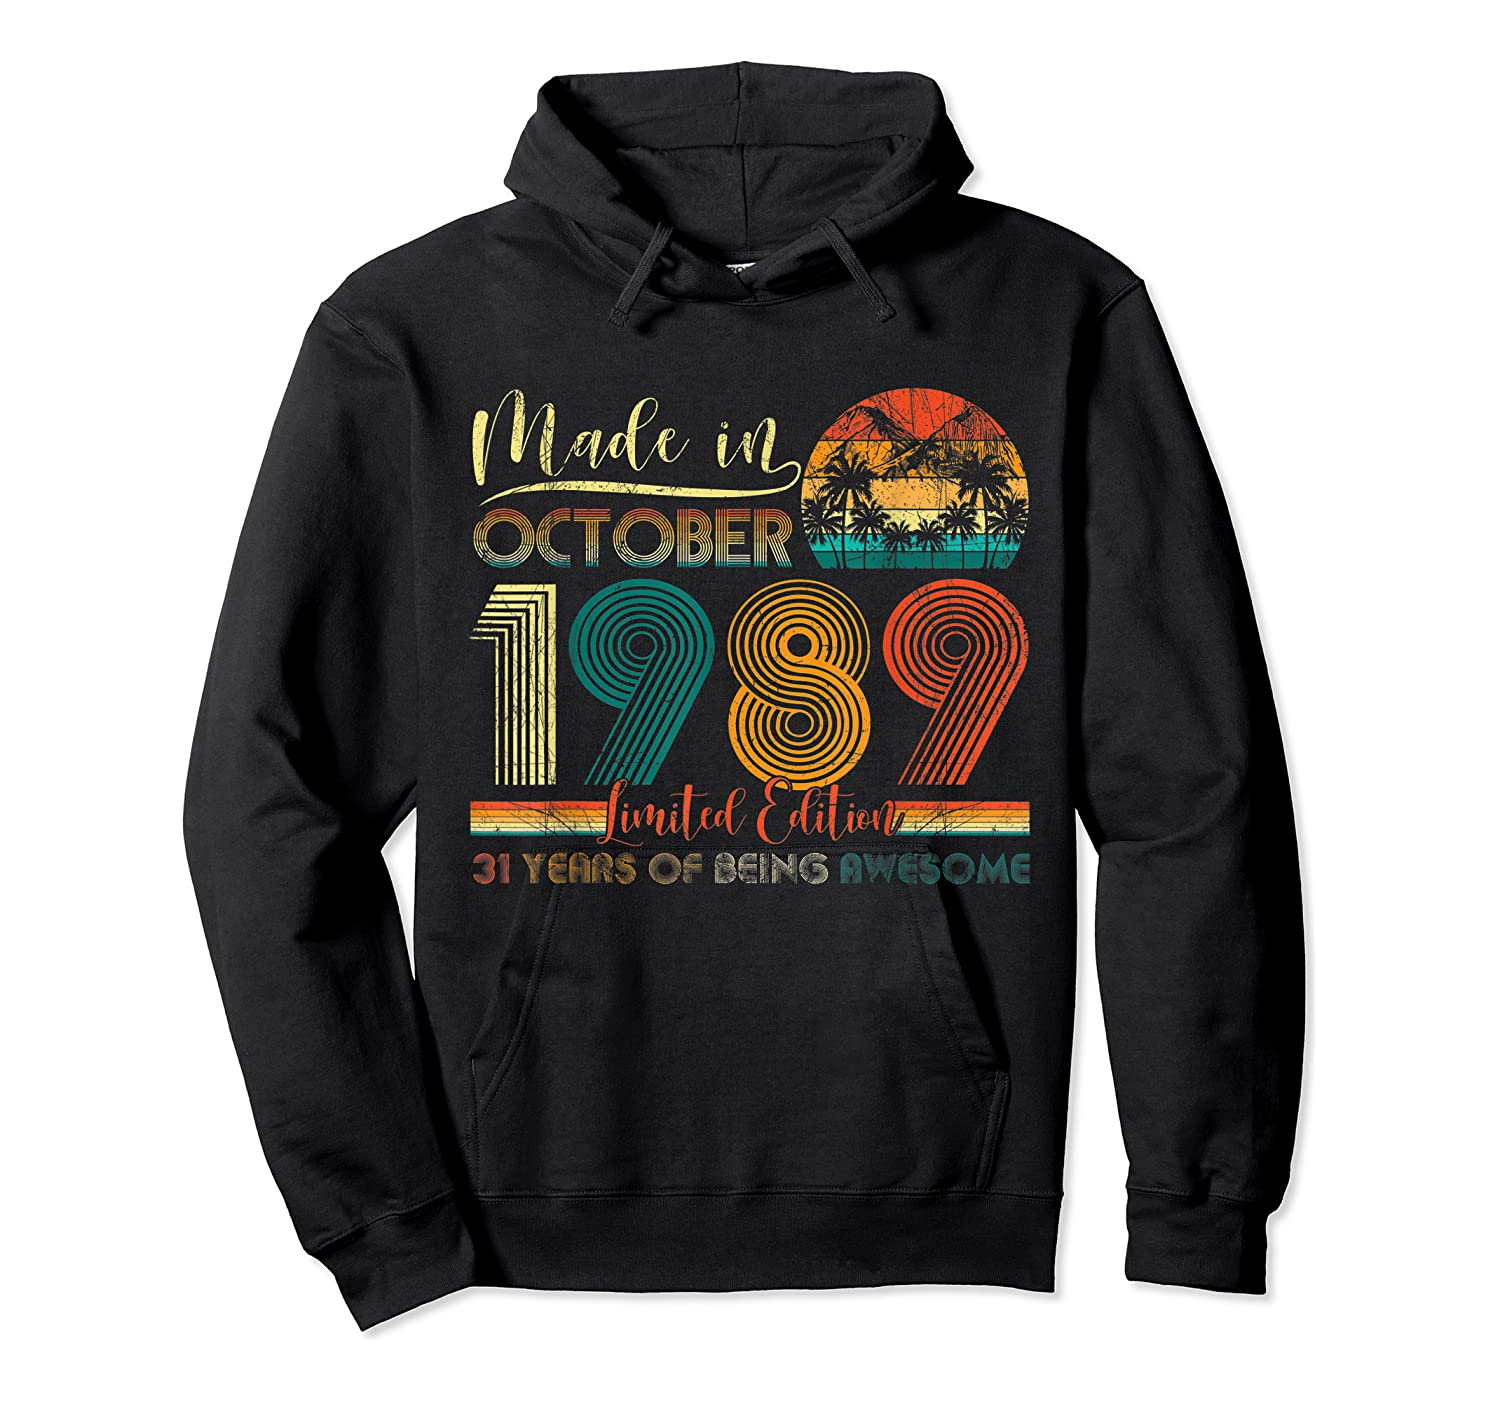 Classic October 1989 Shirt 31st Birthday Gifts 31 Years Old T-shirt Unisex Pullover Hoodie